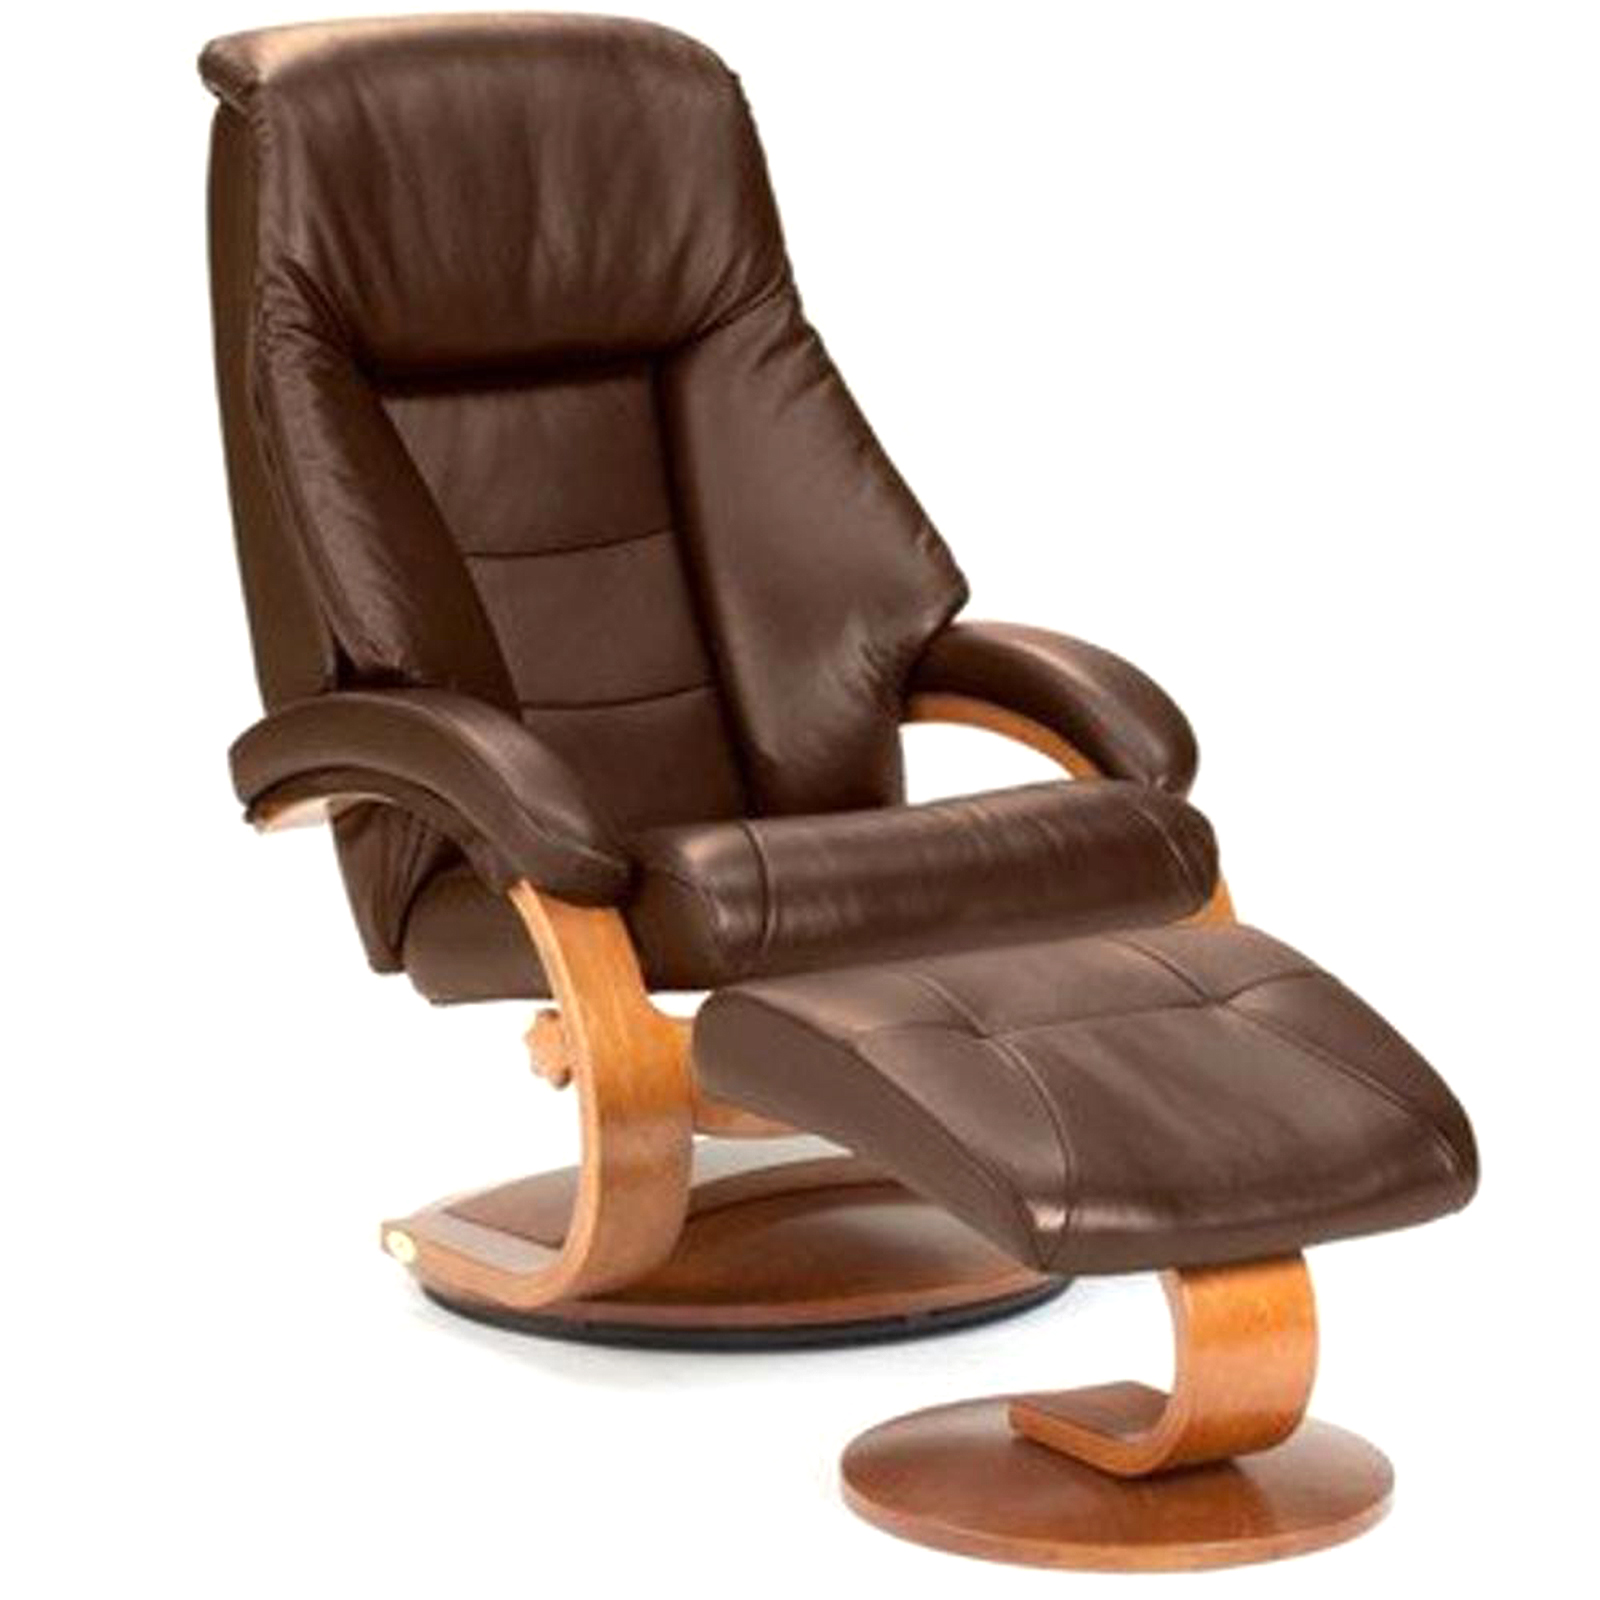 Mac Motion Chairs Oslo Collection Mac Motion Leather Recliner With Matching  Ottoman, Expresso And Walnut